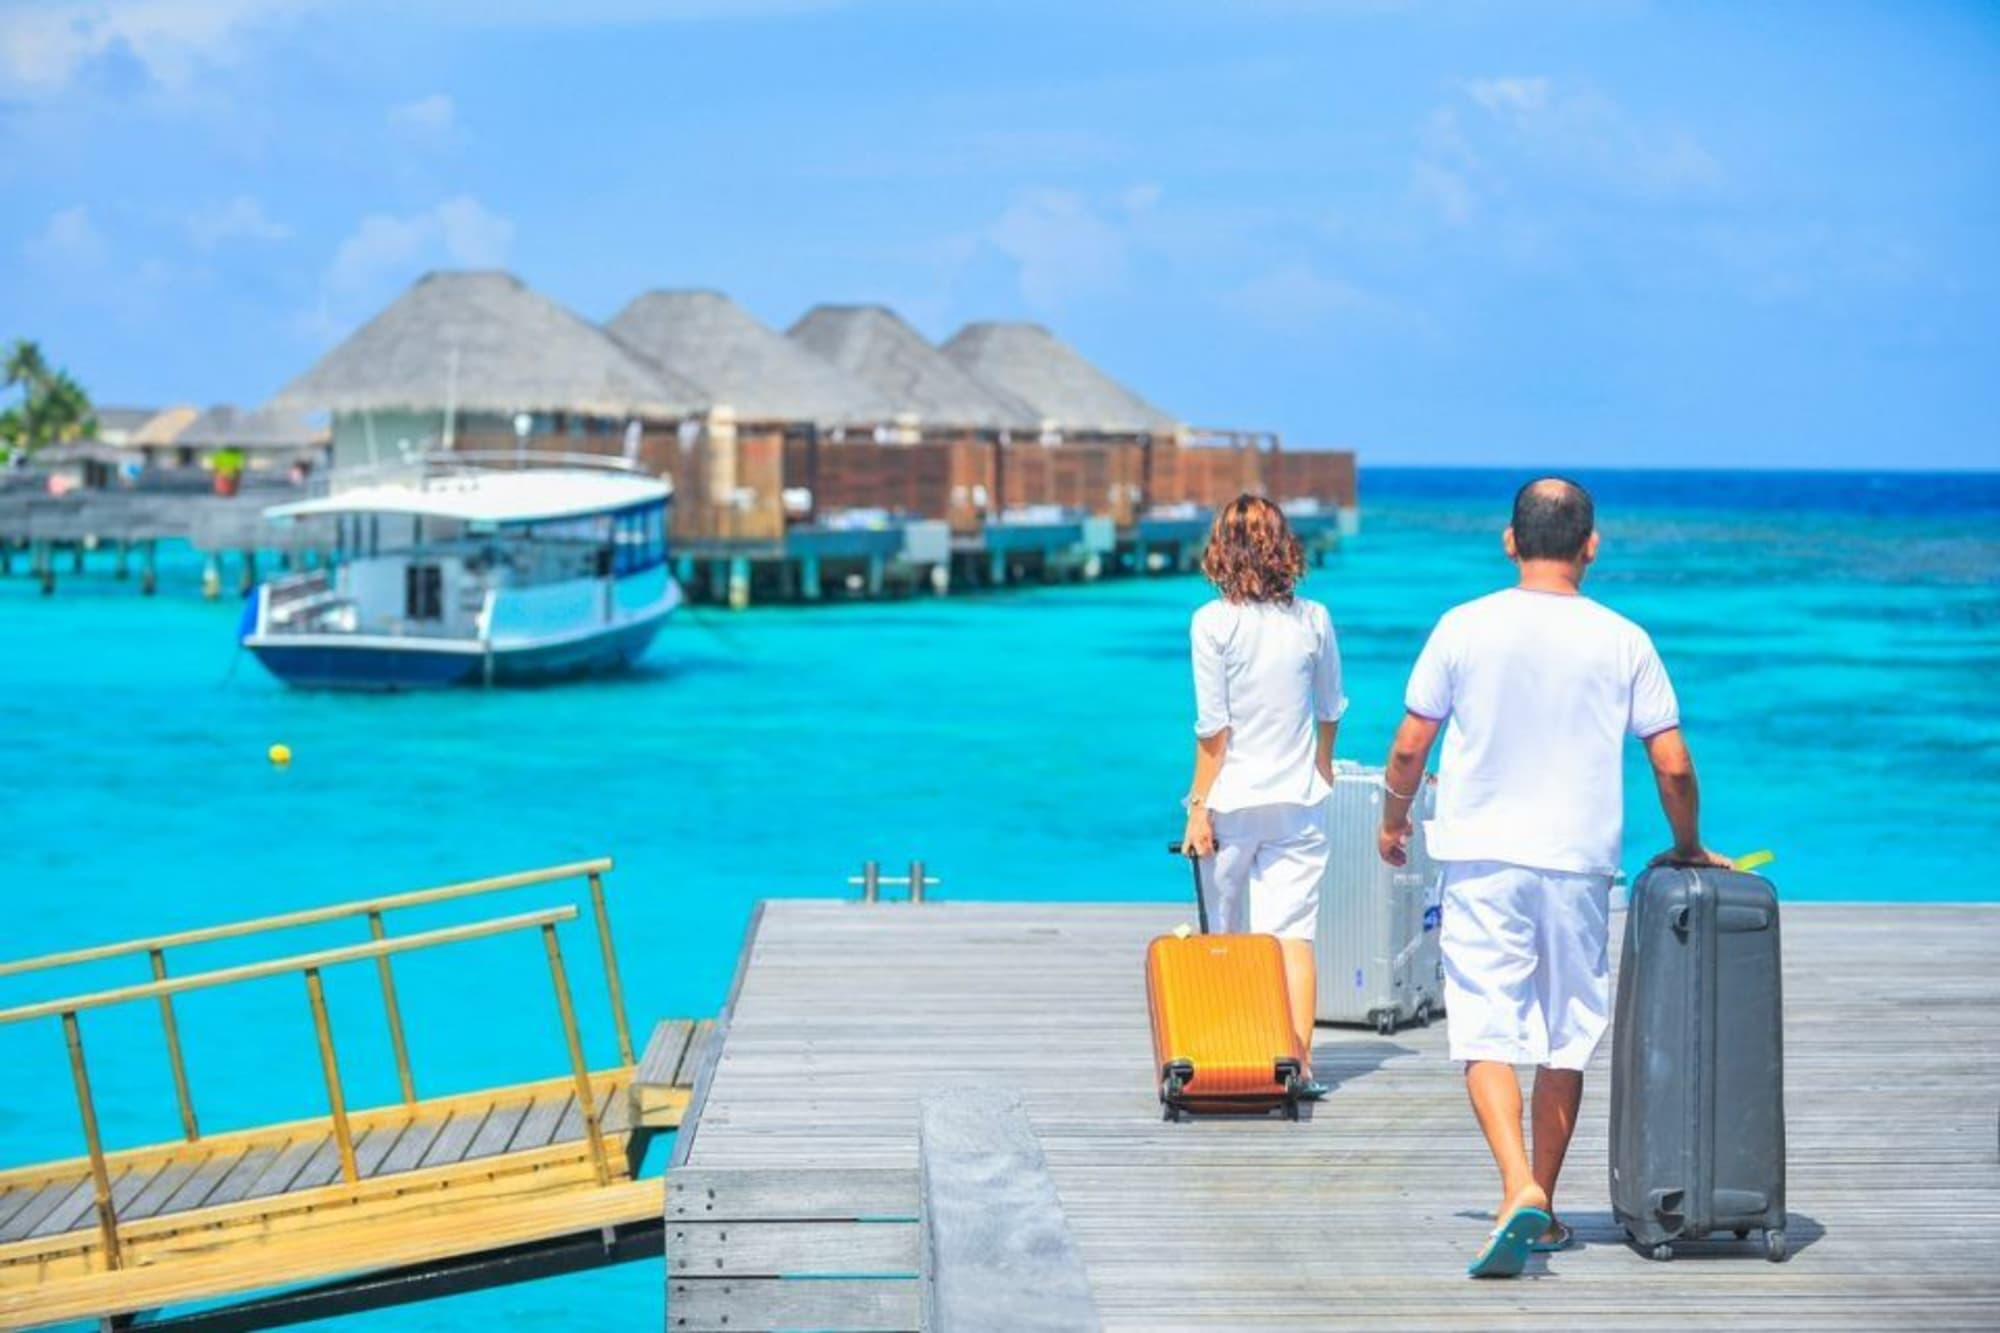 International Tourism to plunge up to 80% due to virus—UN